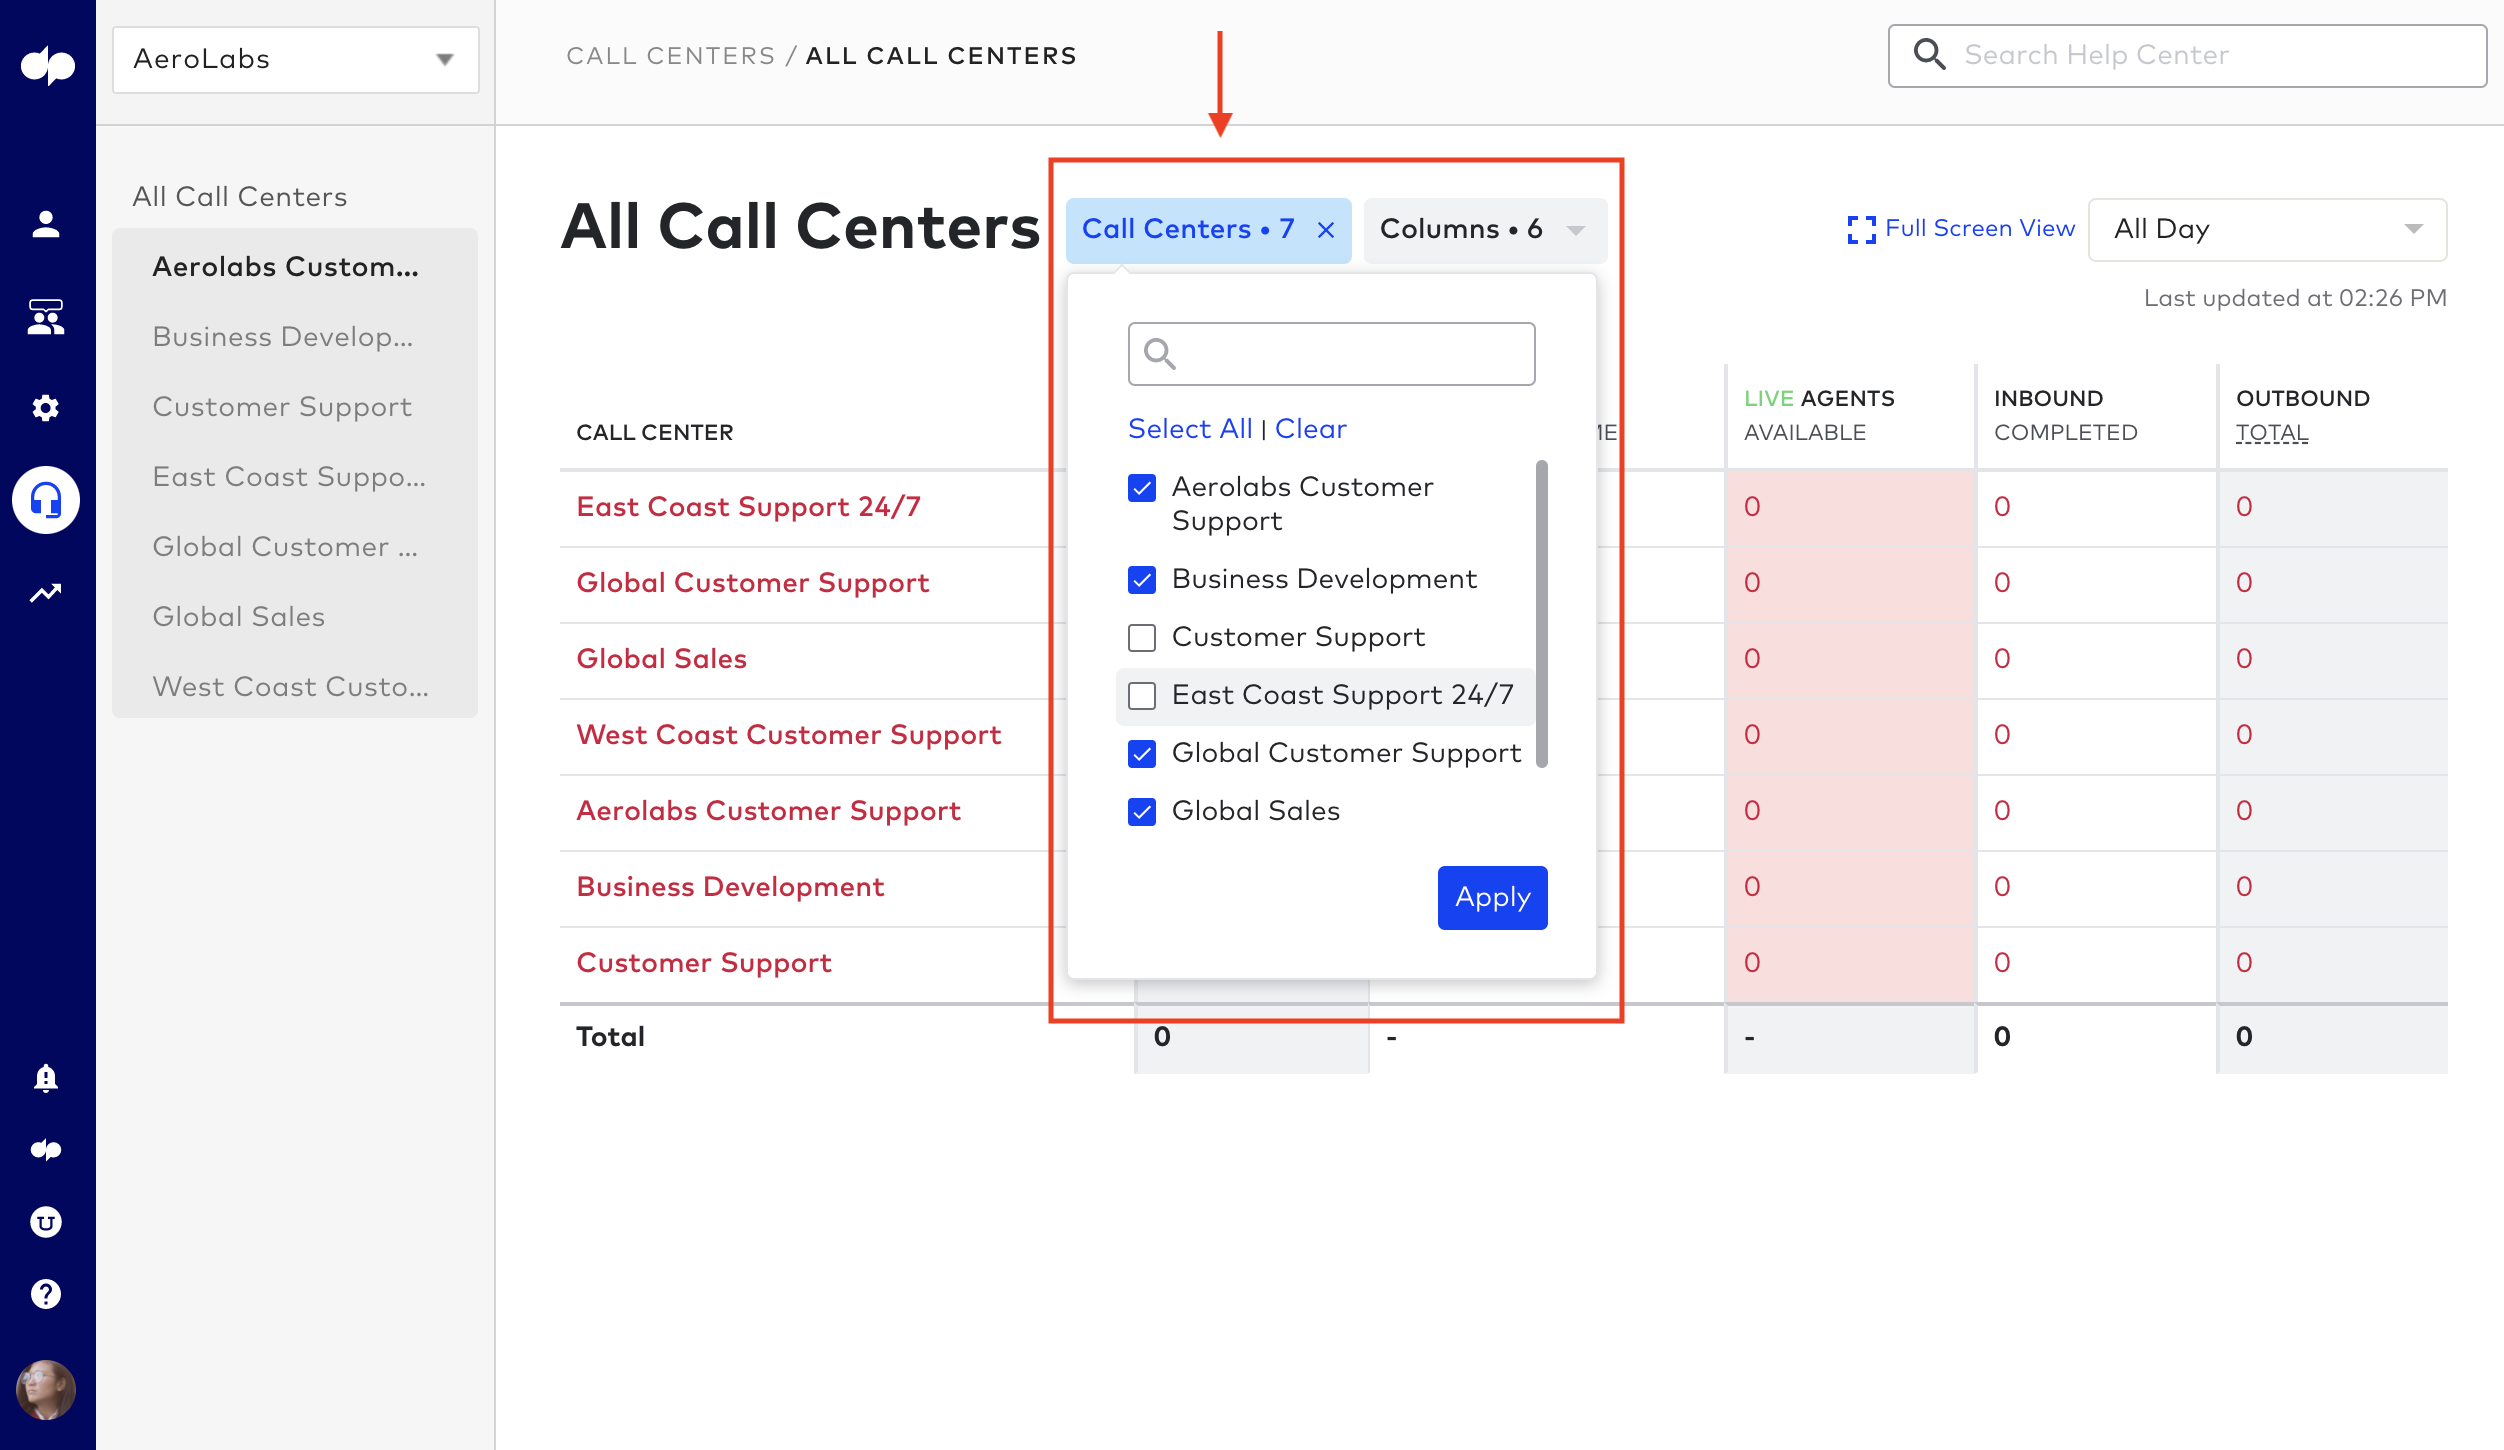 wallboard-select-call-centers.png